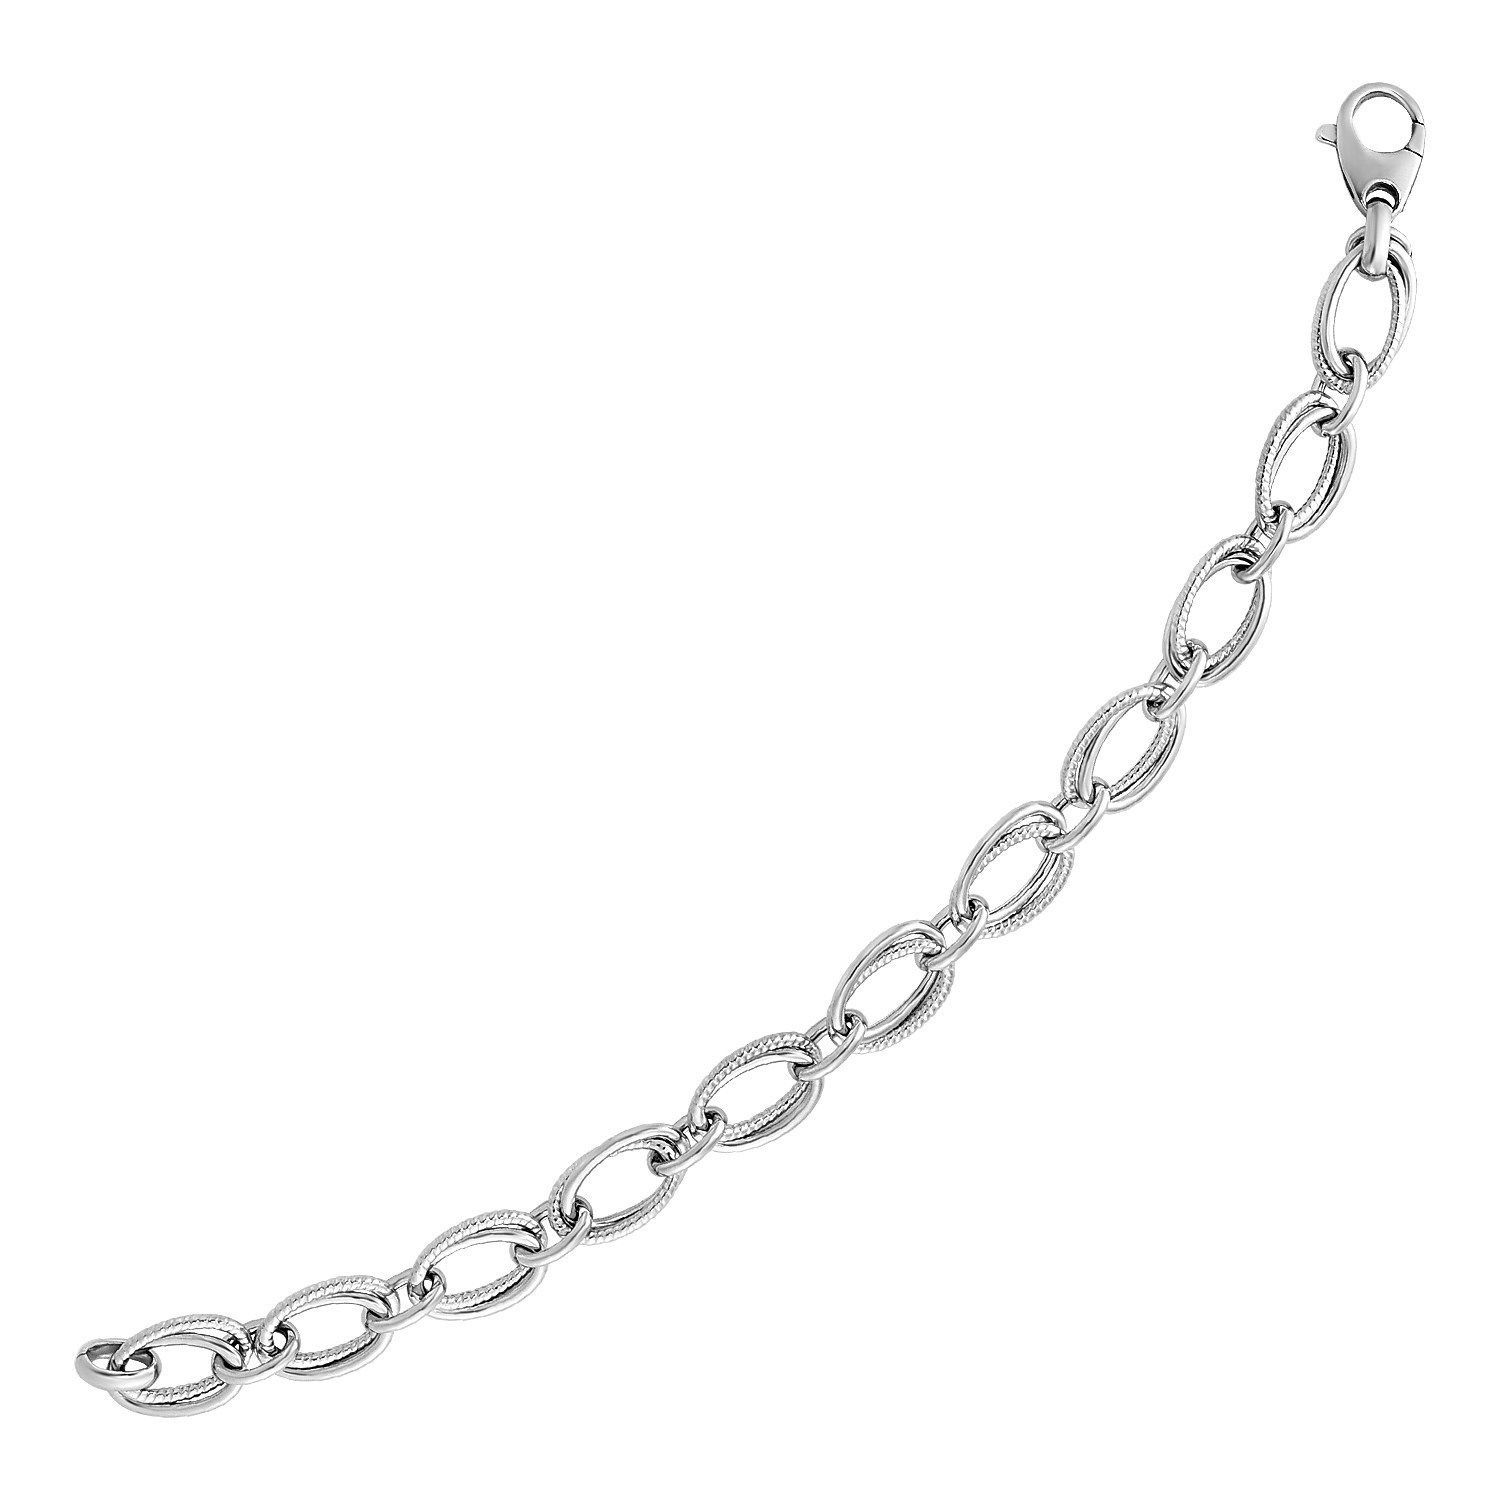 Primary image for Polished and Textured Oval Link Bracelet in Sterling Silver